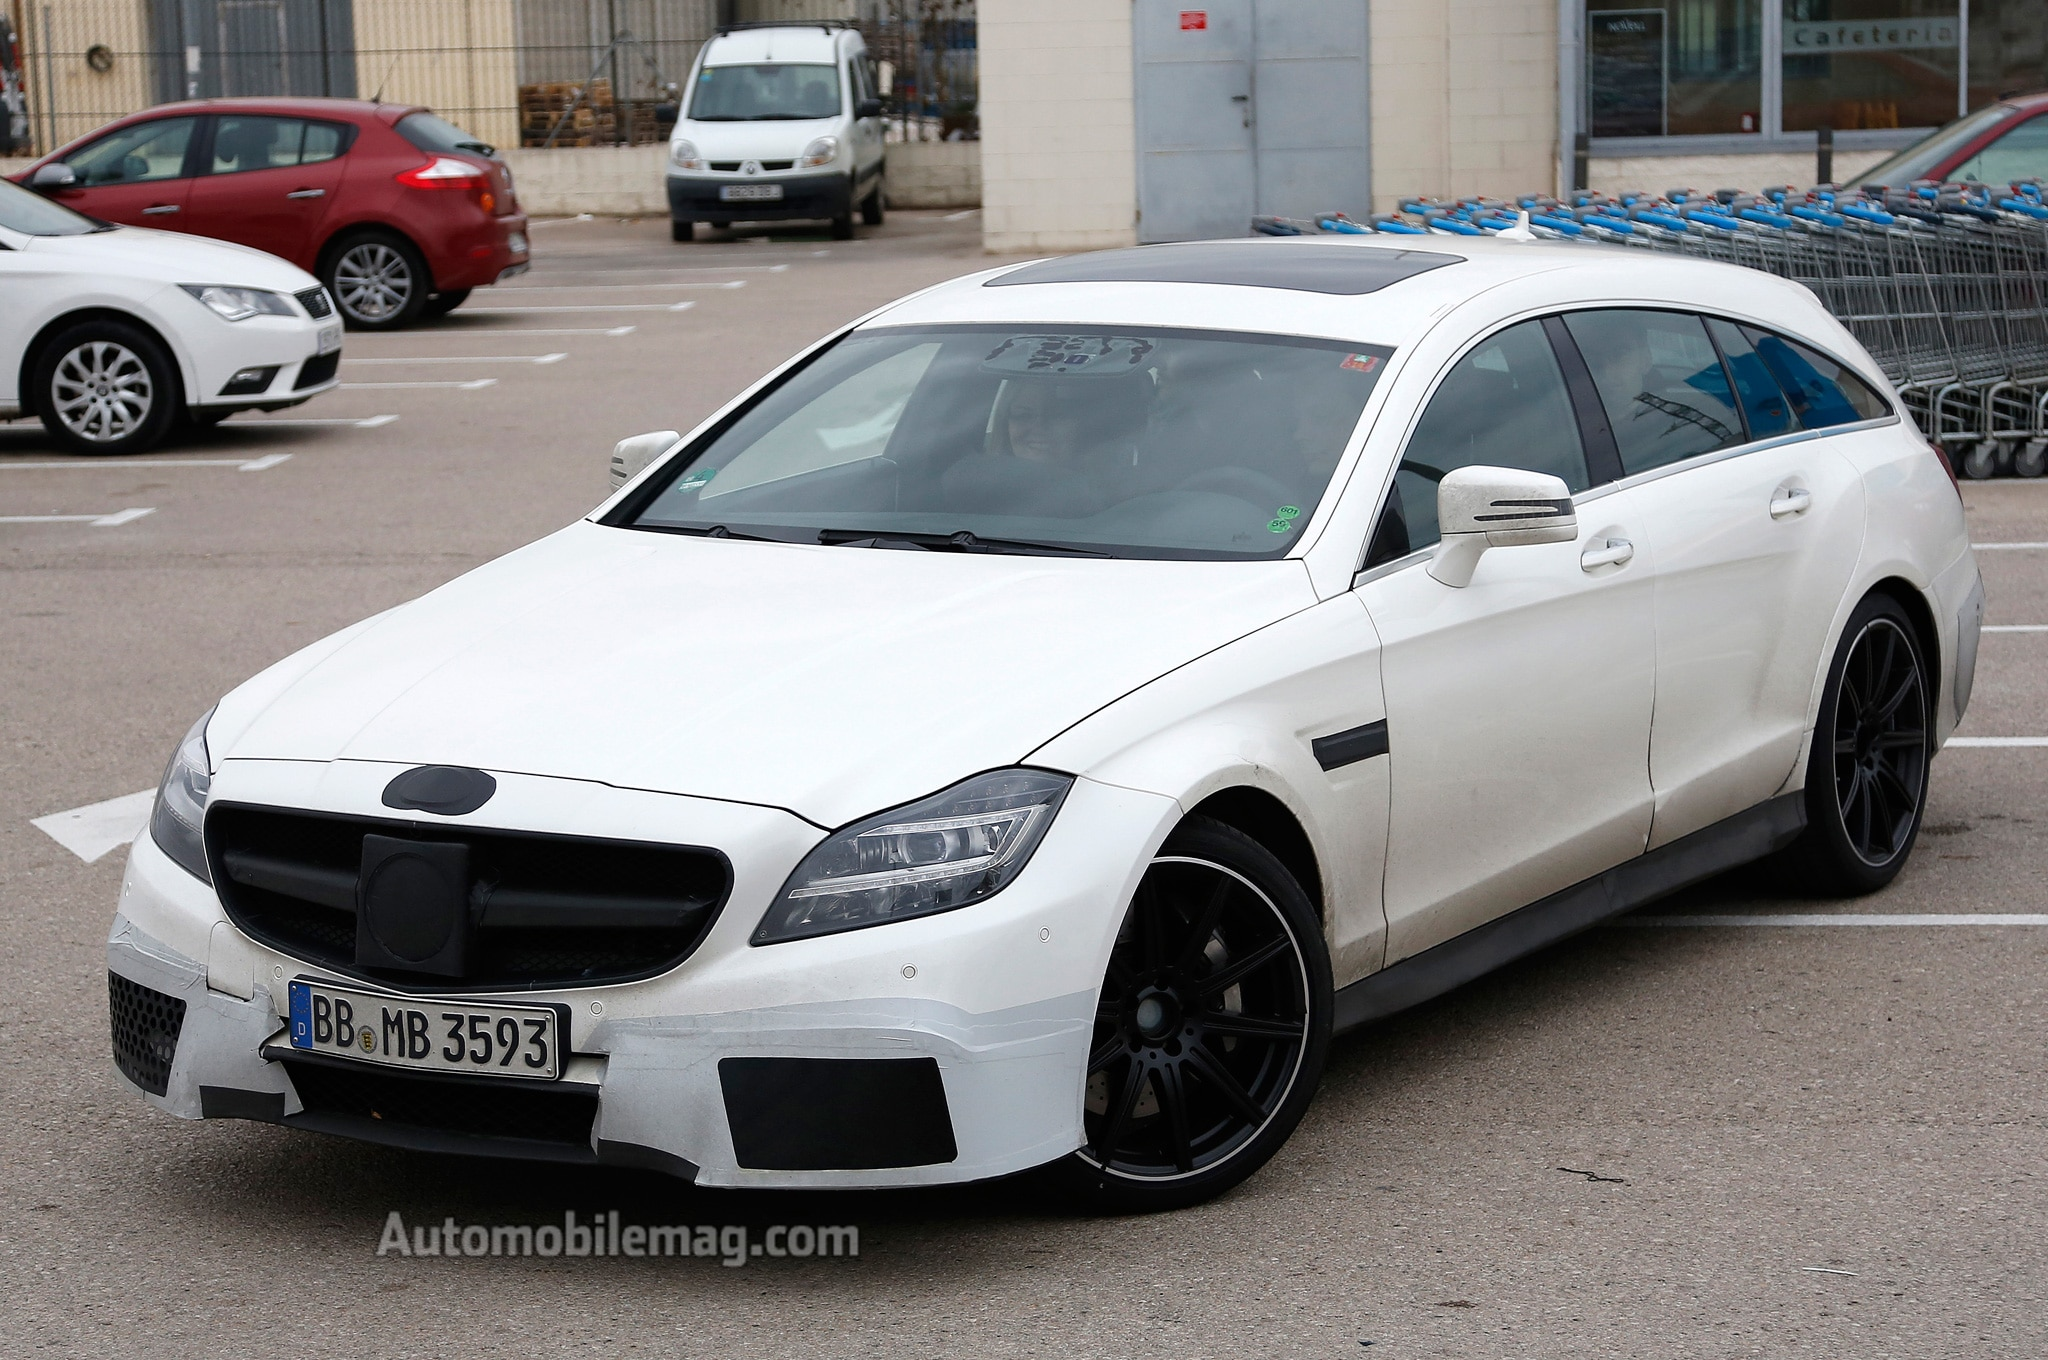 2015 Mercedes Benz CLS63 AMG Shooting Brake Spy Shot Front Three Quarters View 21